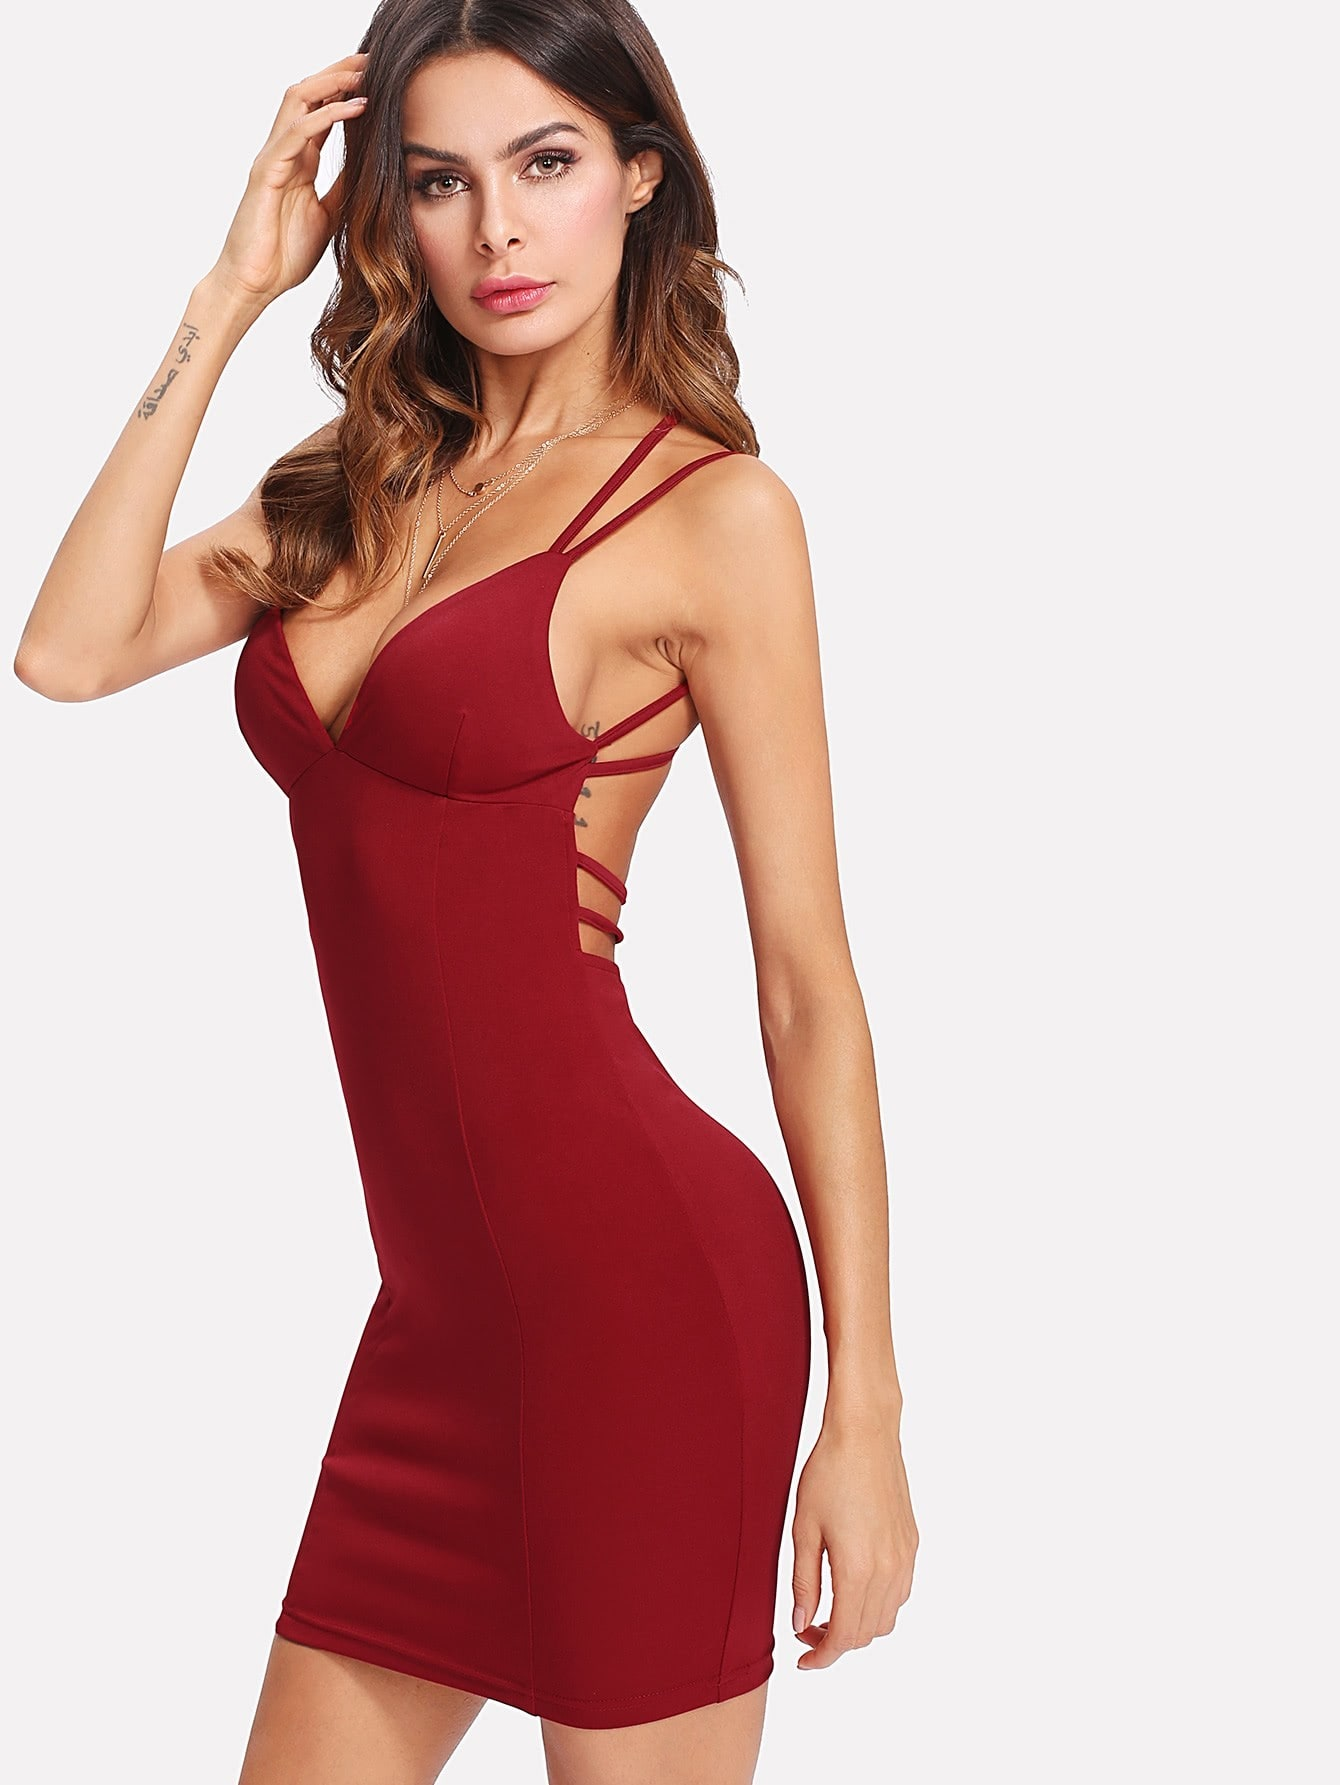 Strappy Backless Fitted Cami Dress strappy backless club dress